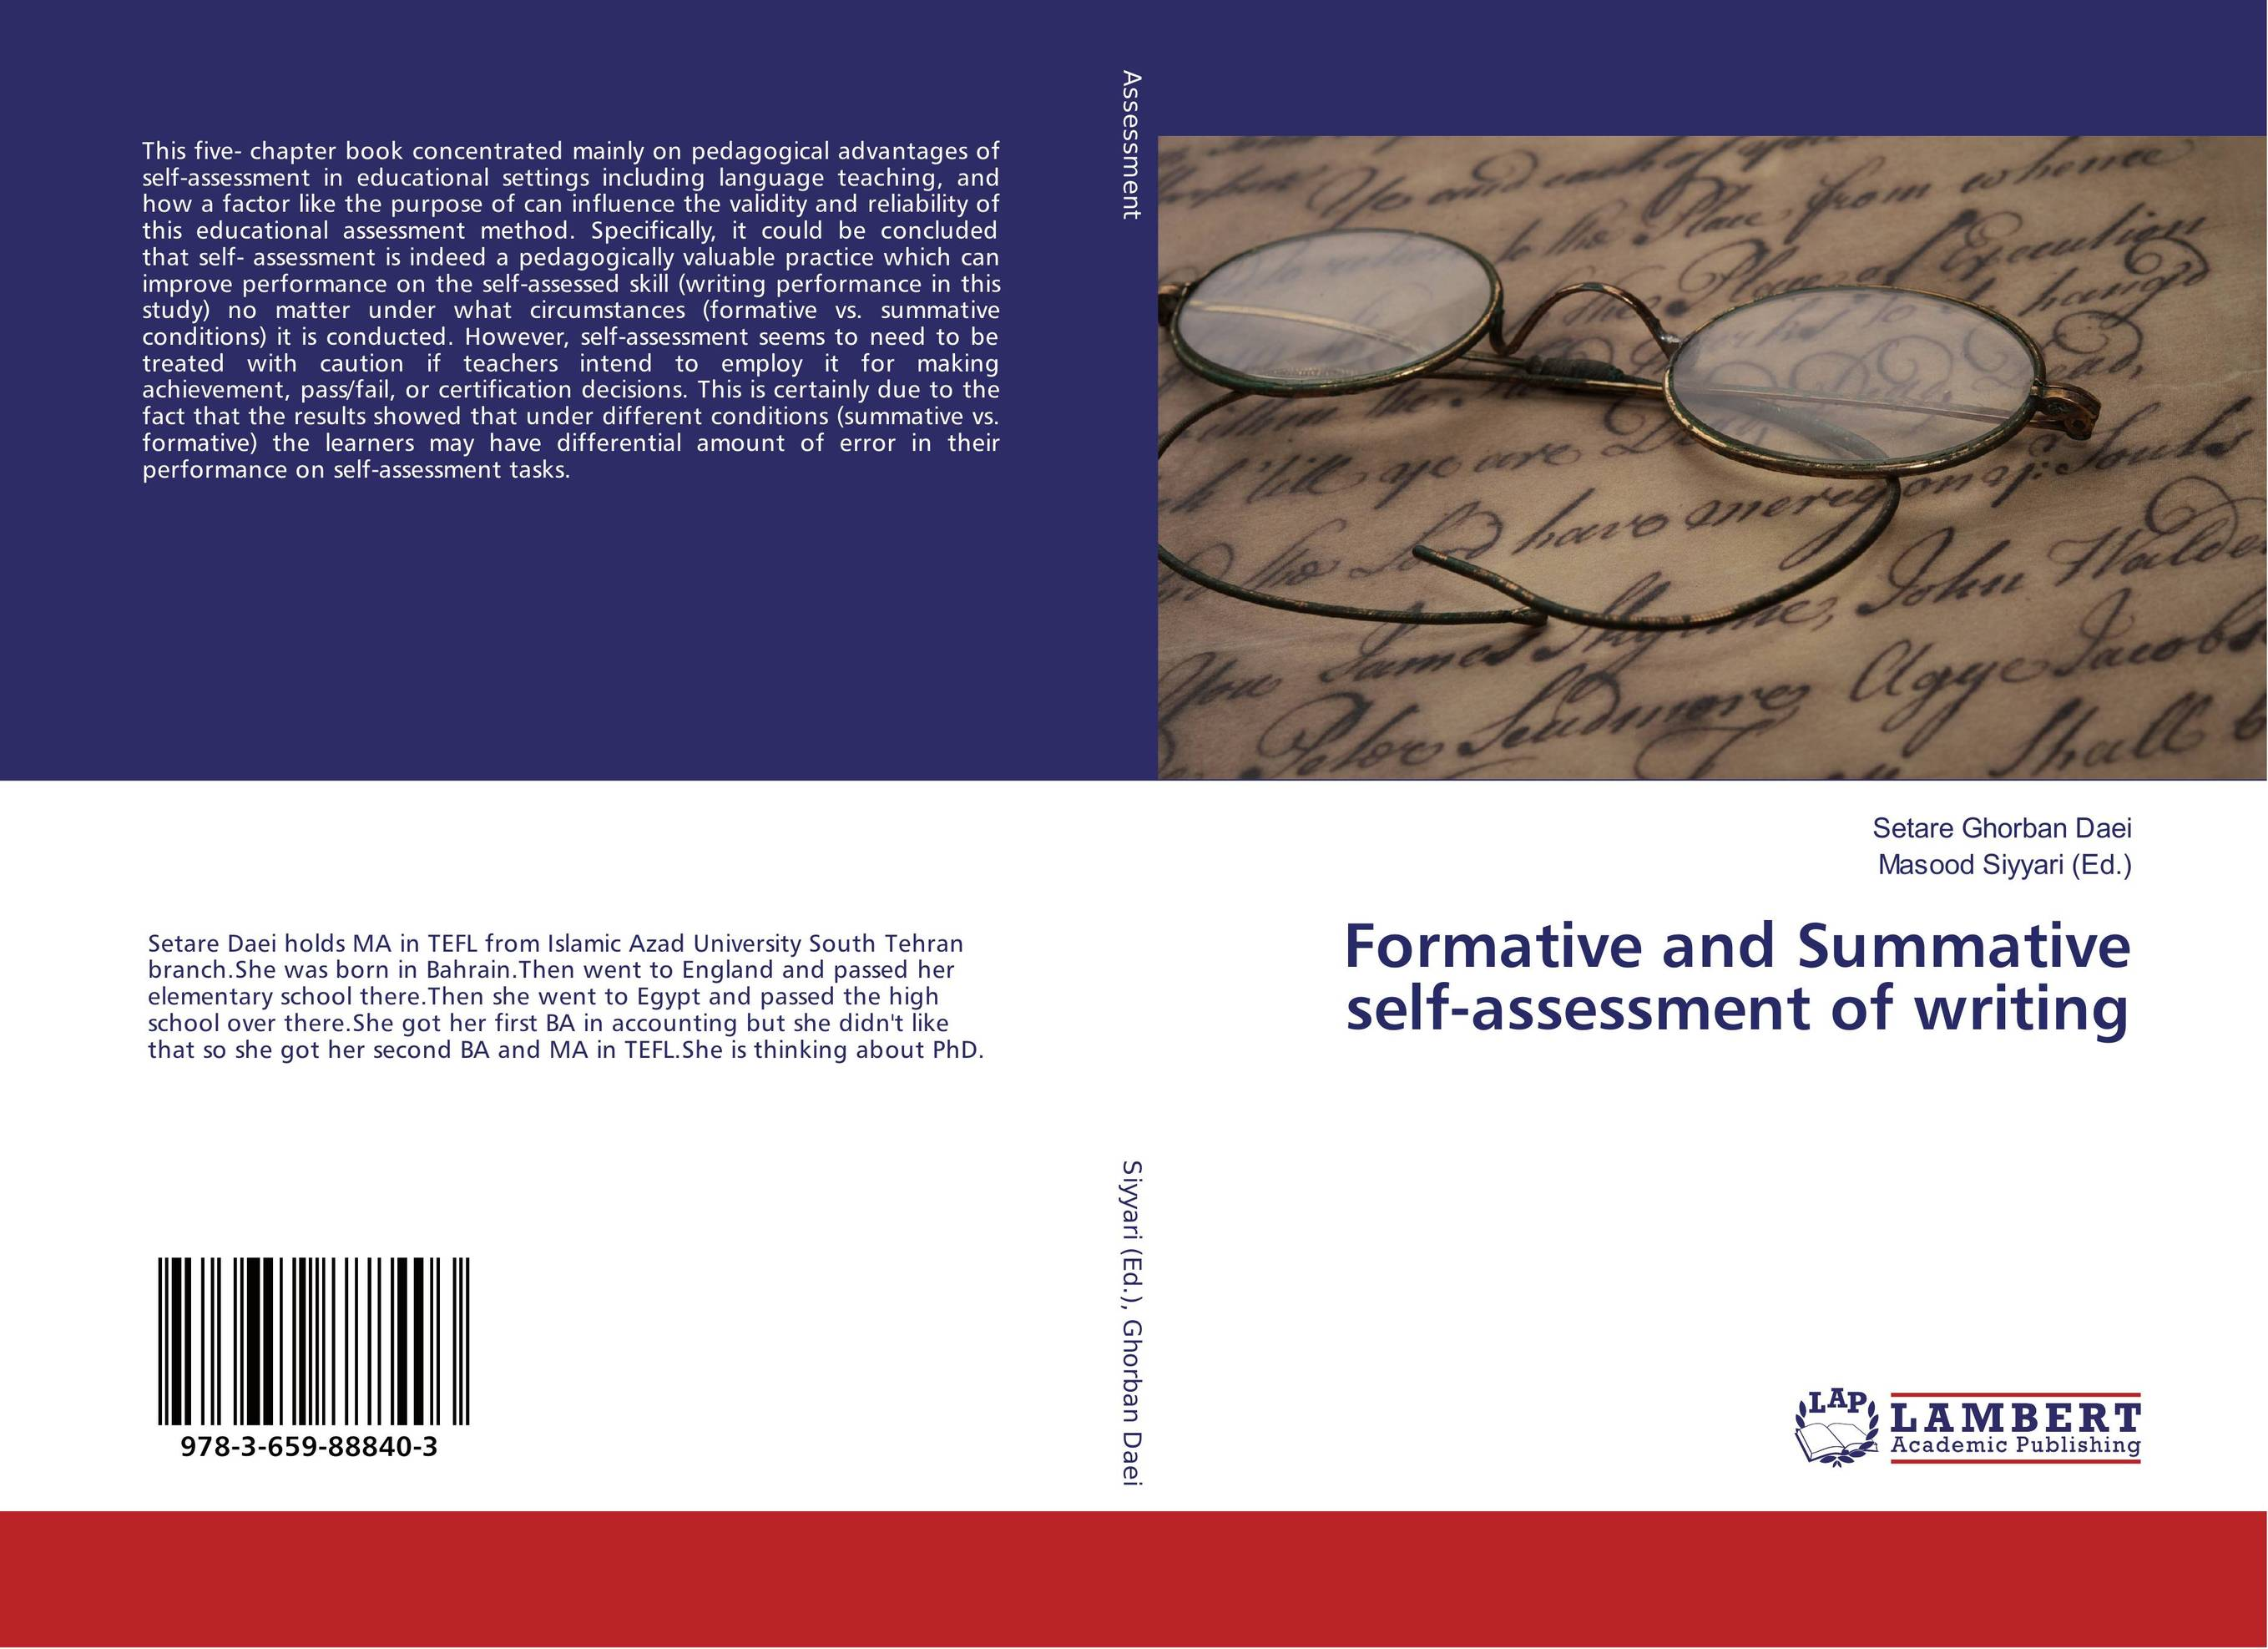 Formative and Summative self-assessment of writing performance and durability assessment